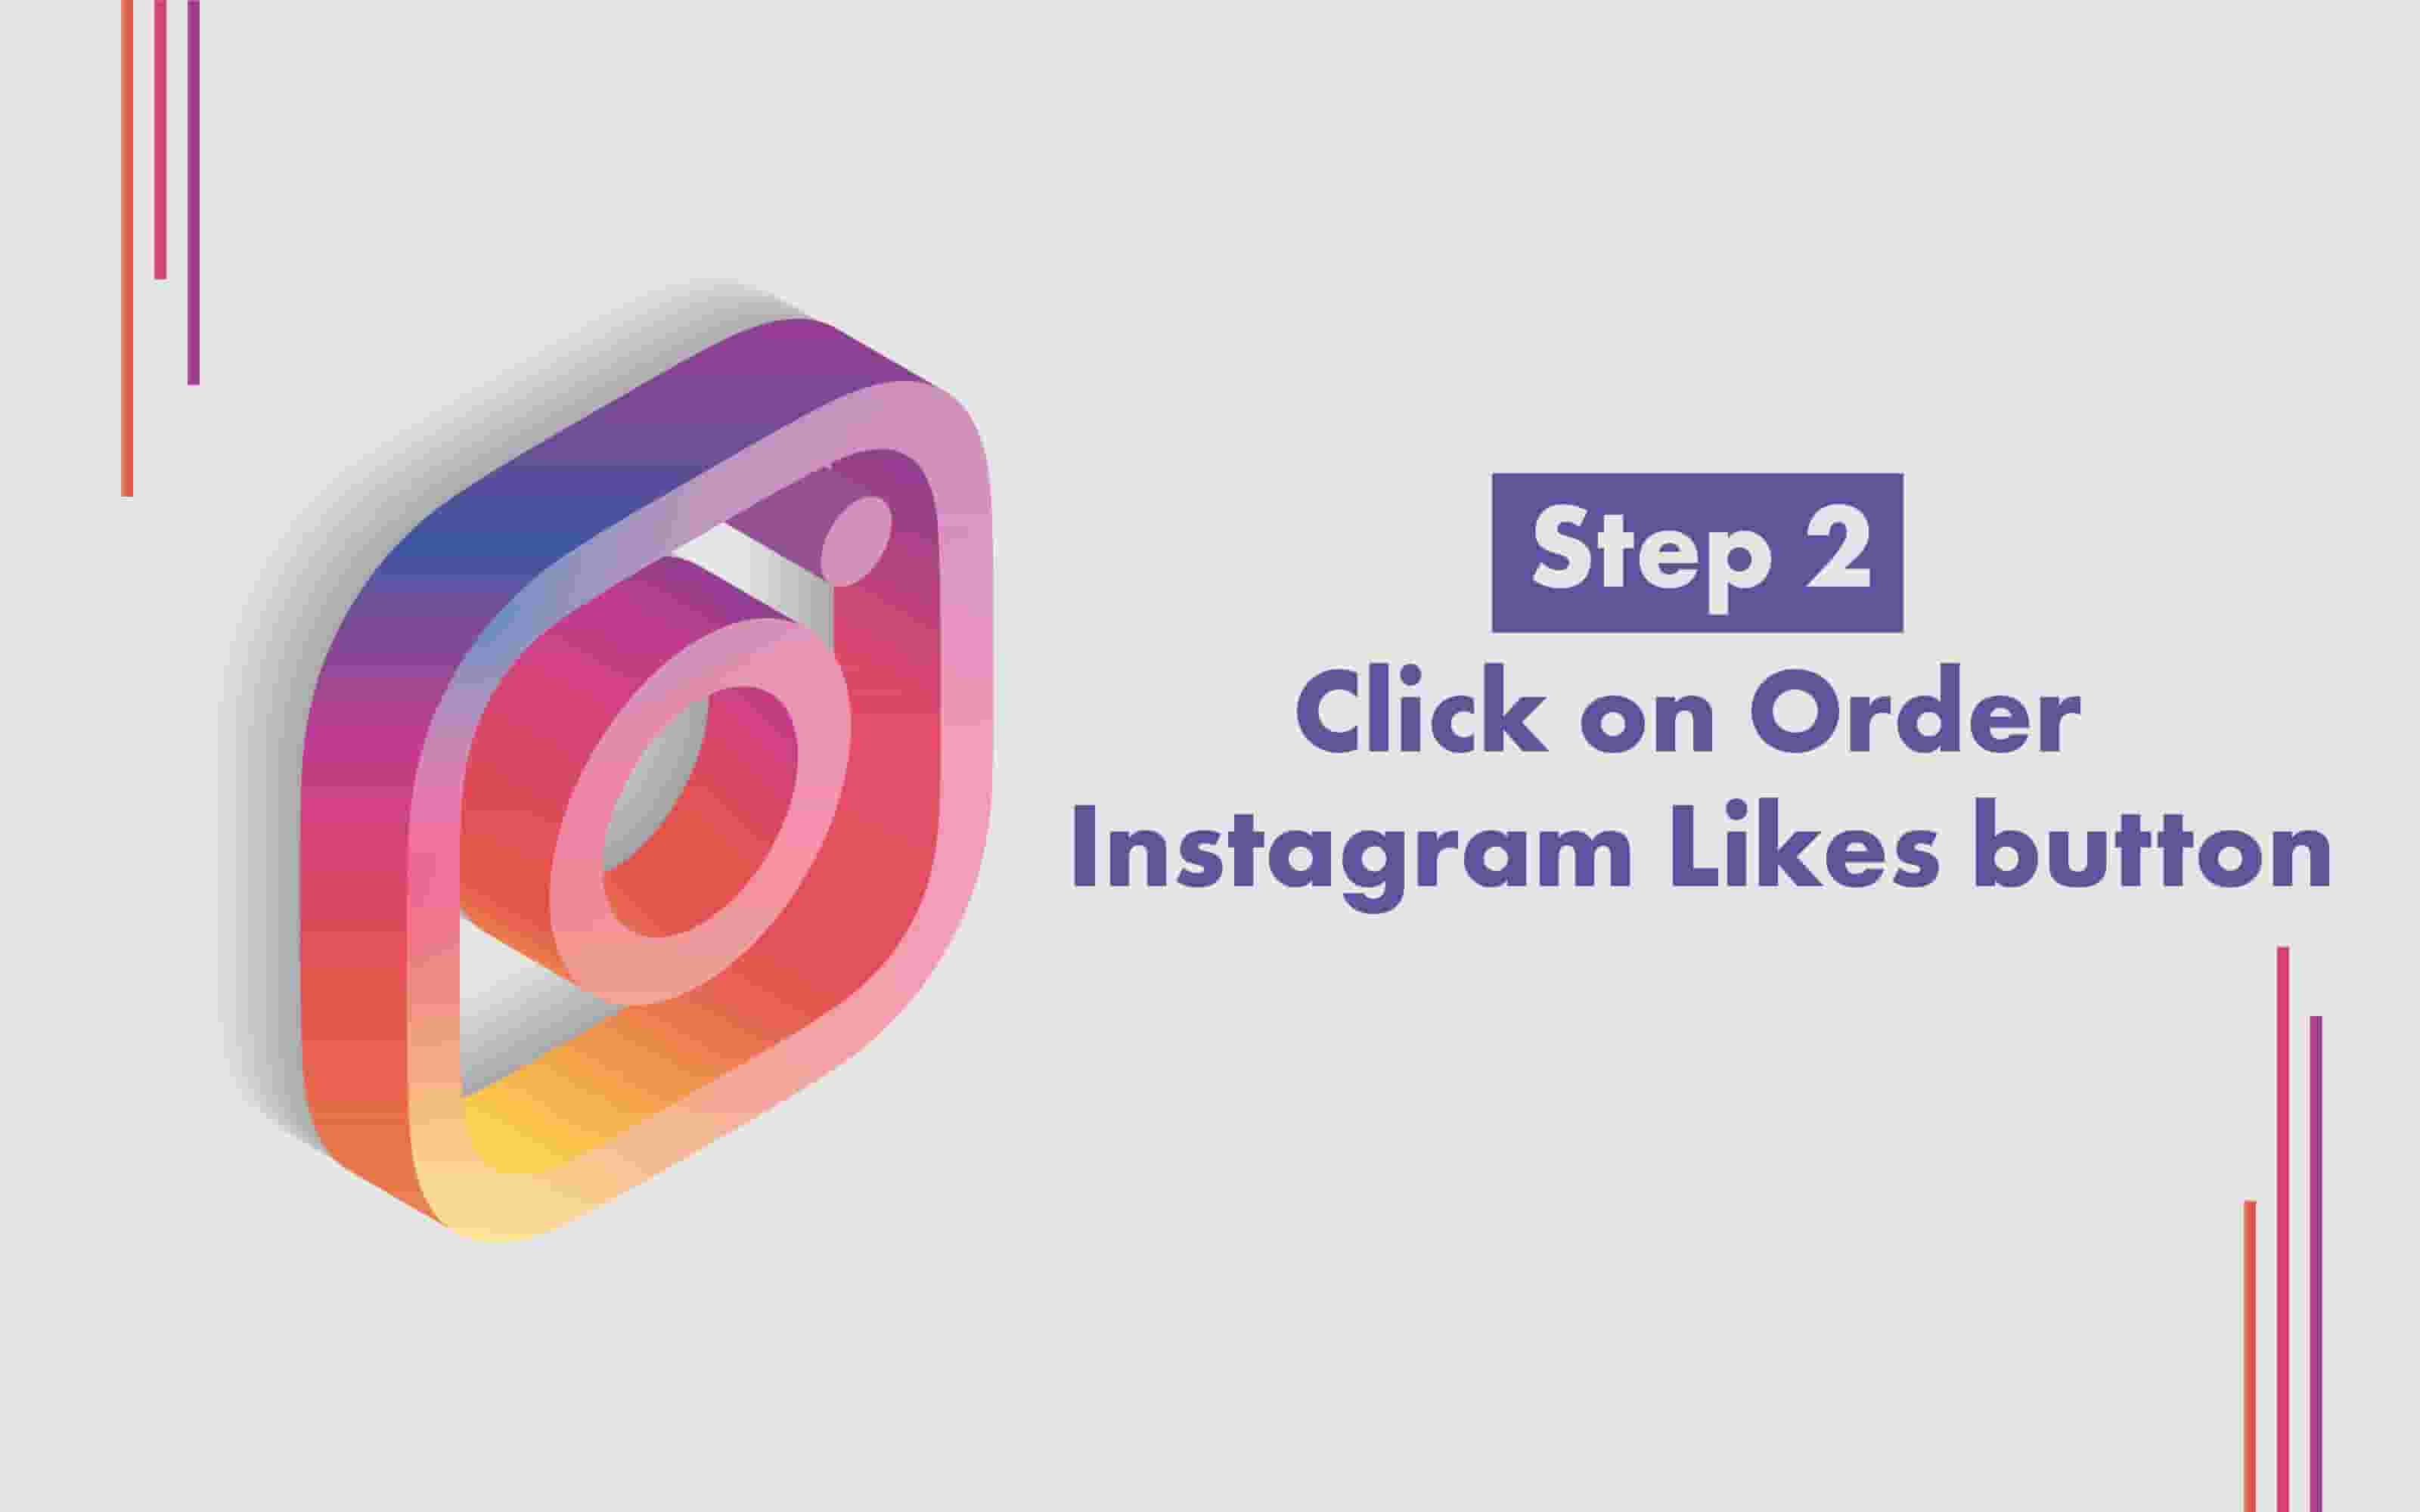 How to Buy Instagram Likes step 2